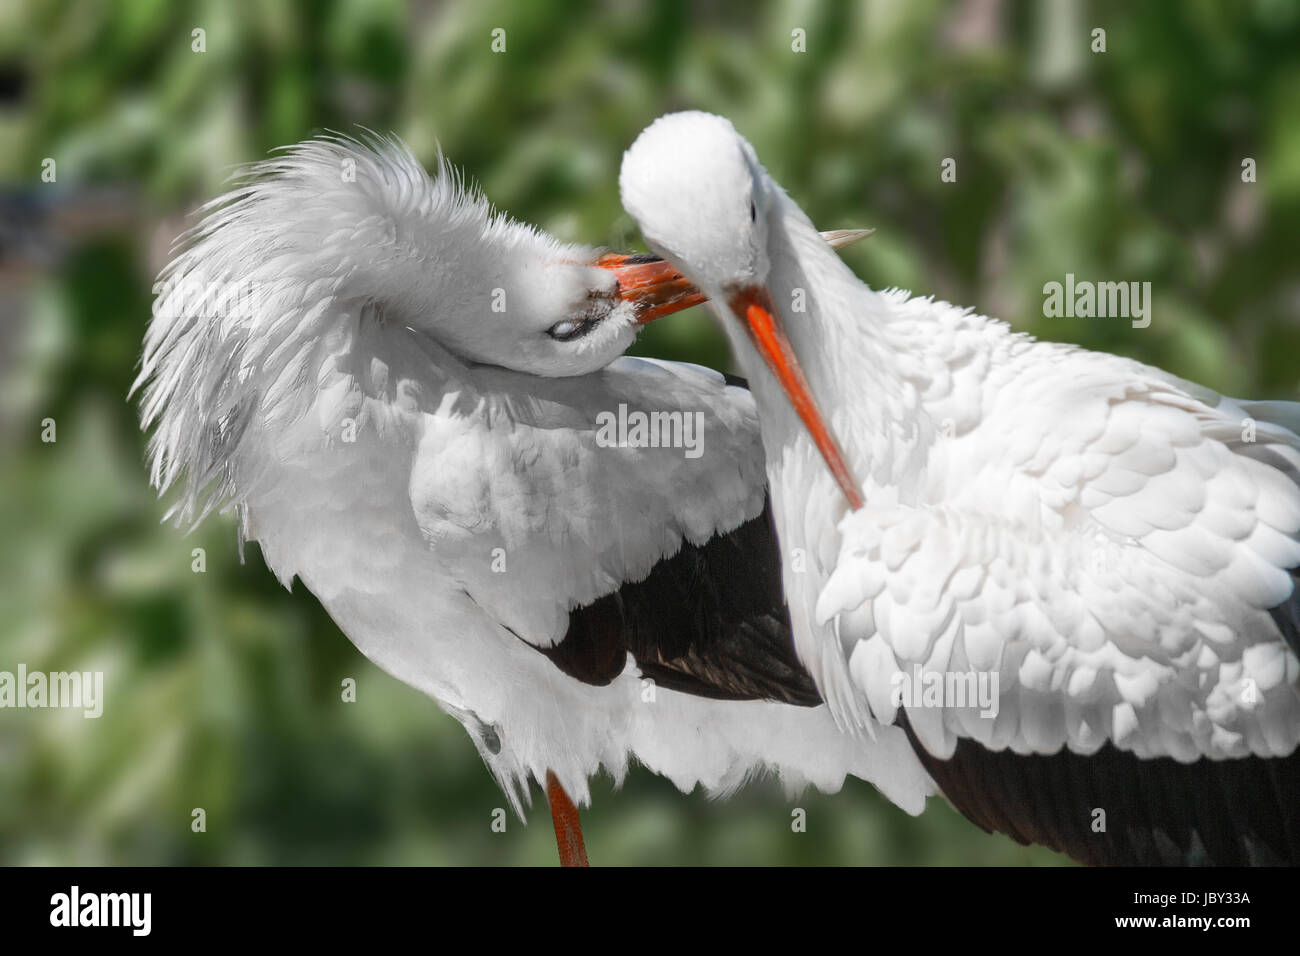 Image animals two birds beautiful white cranes - Stock Image